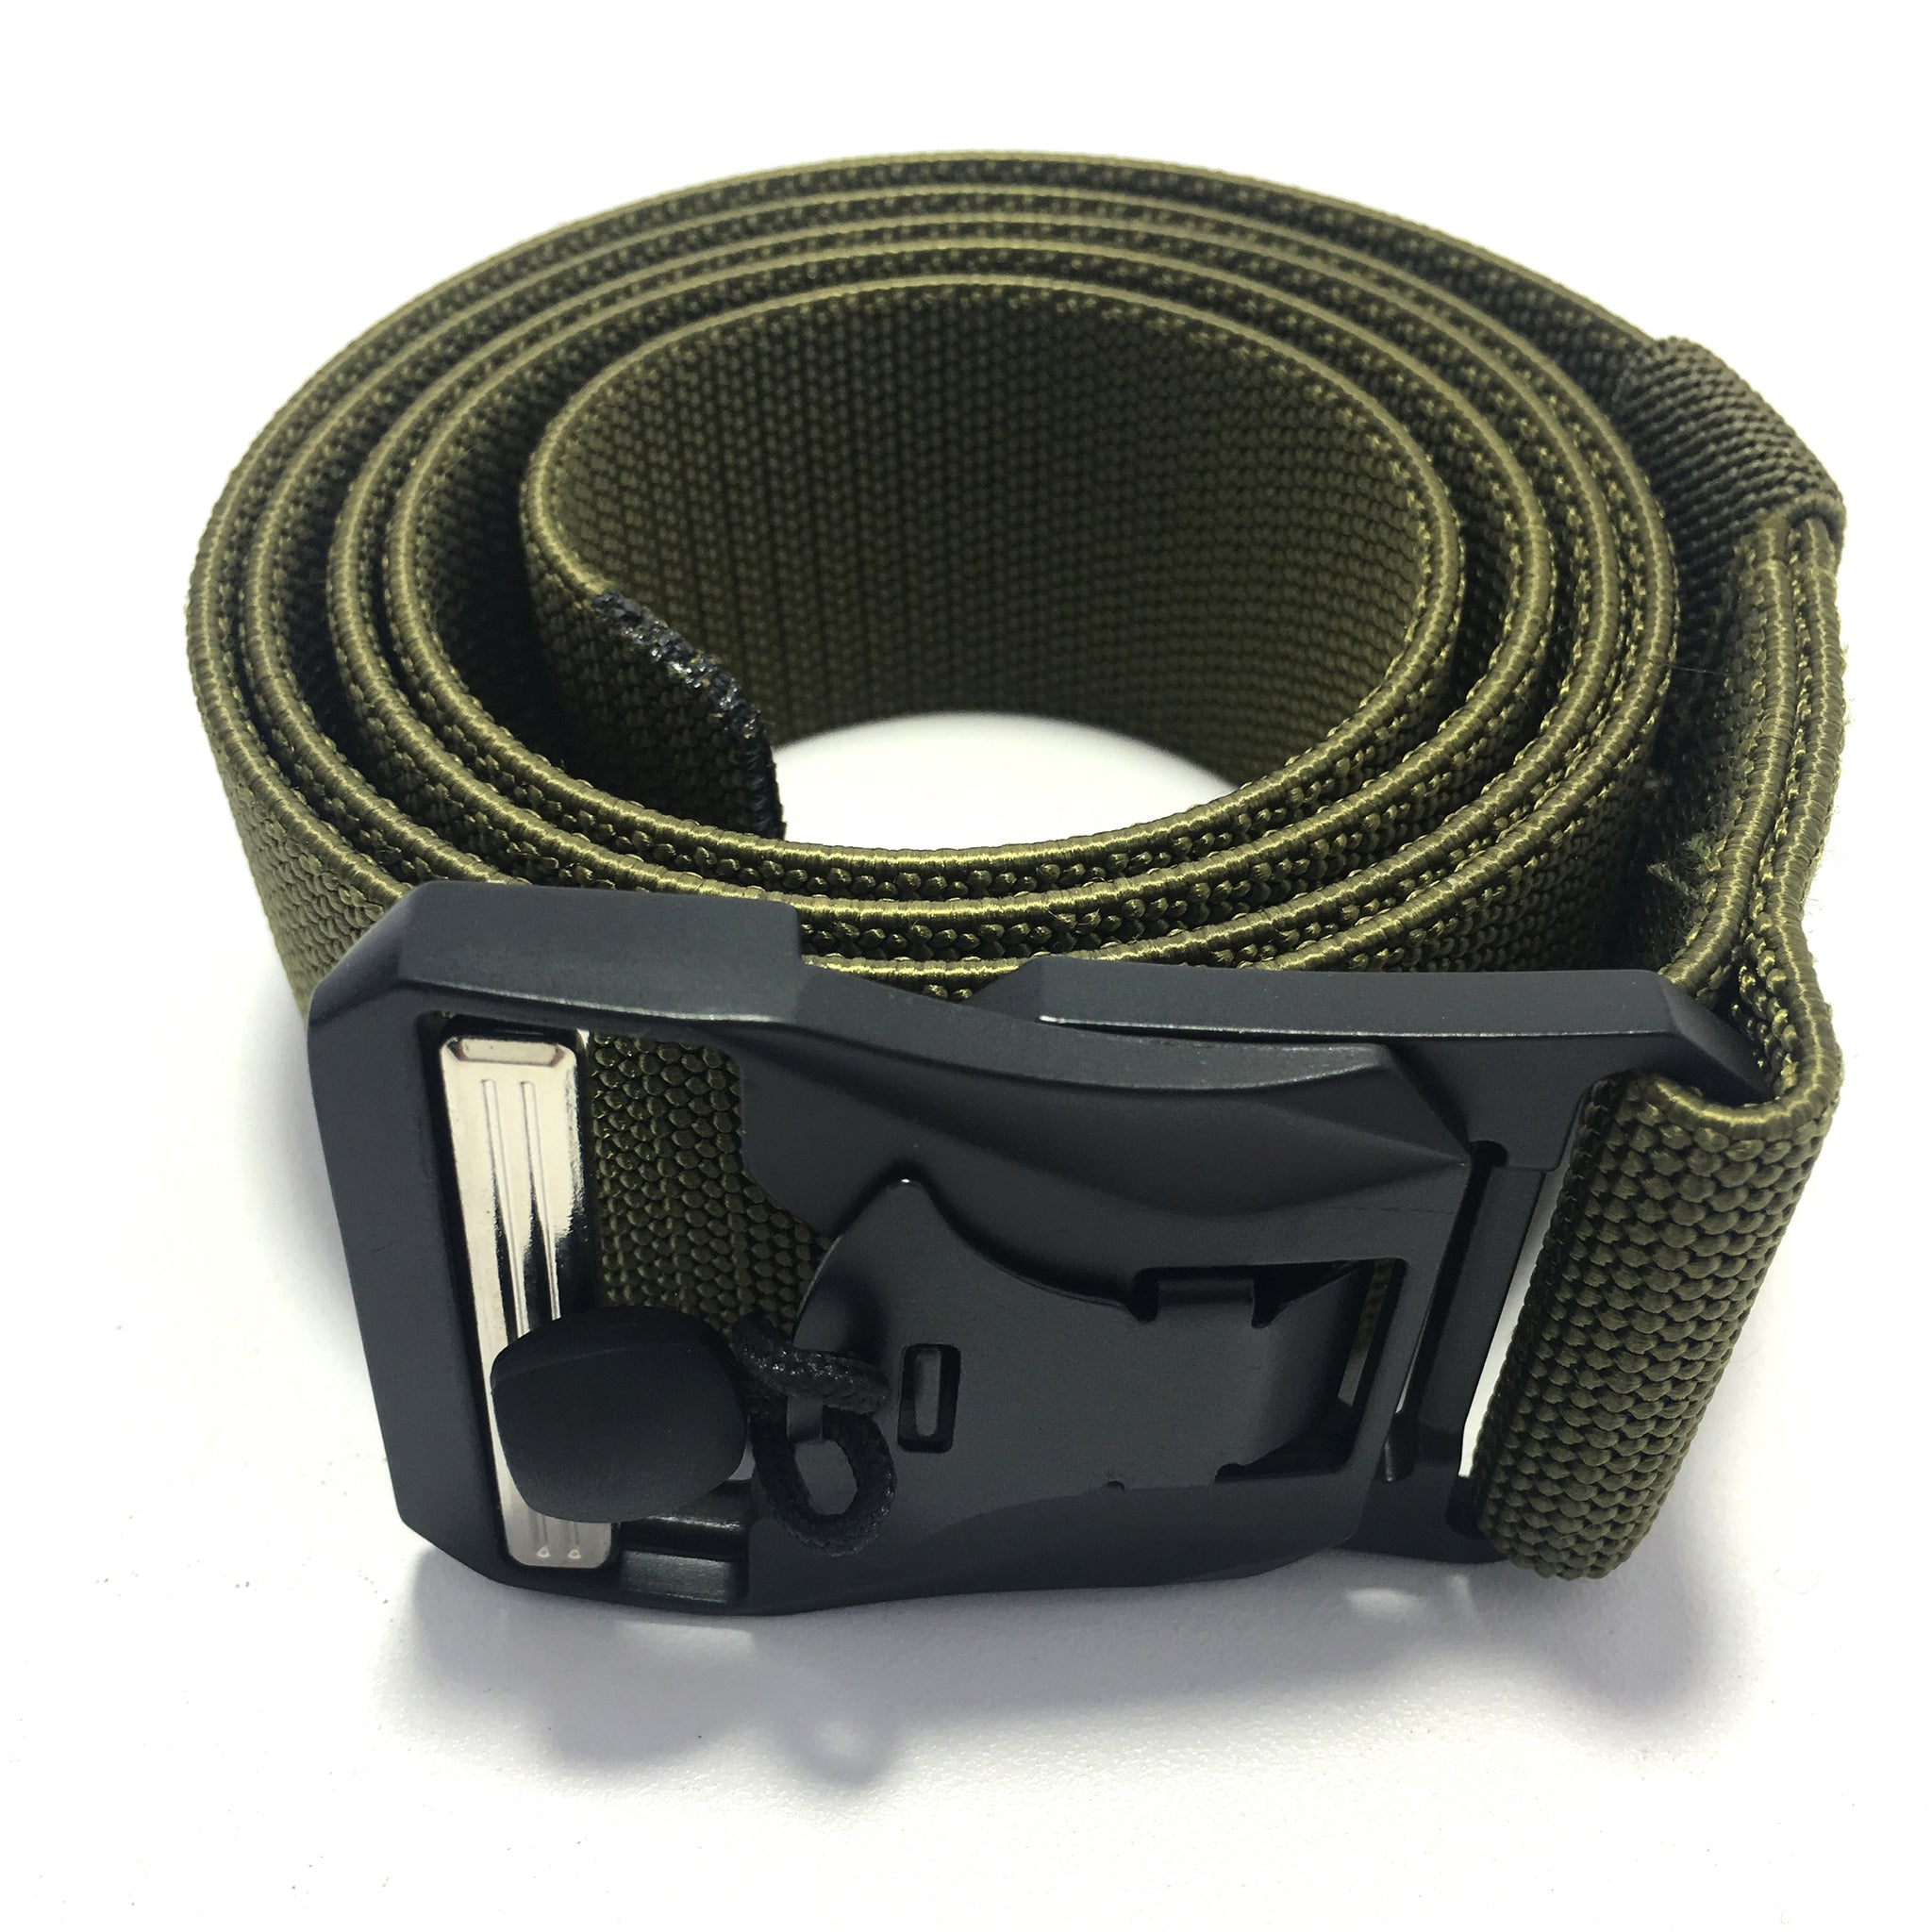 Ficuster Unisex Military Green Metal Auto Lock Magnetic Buckle Nylon Canvas Braided Belt